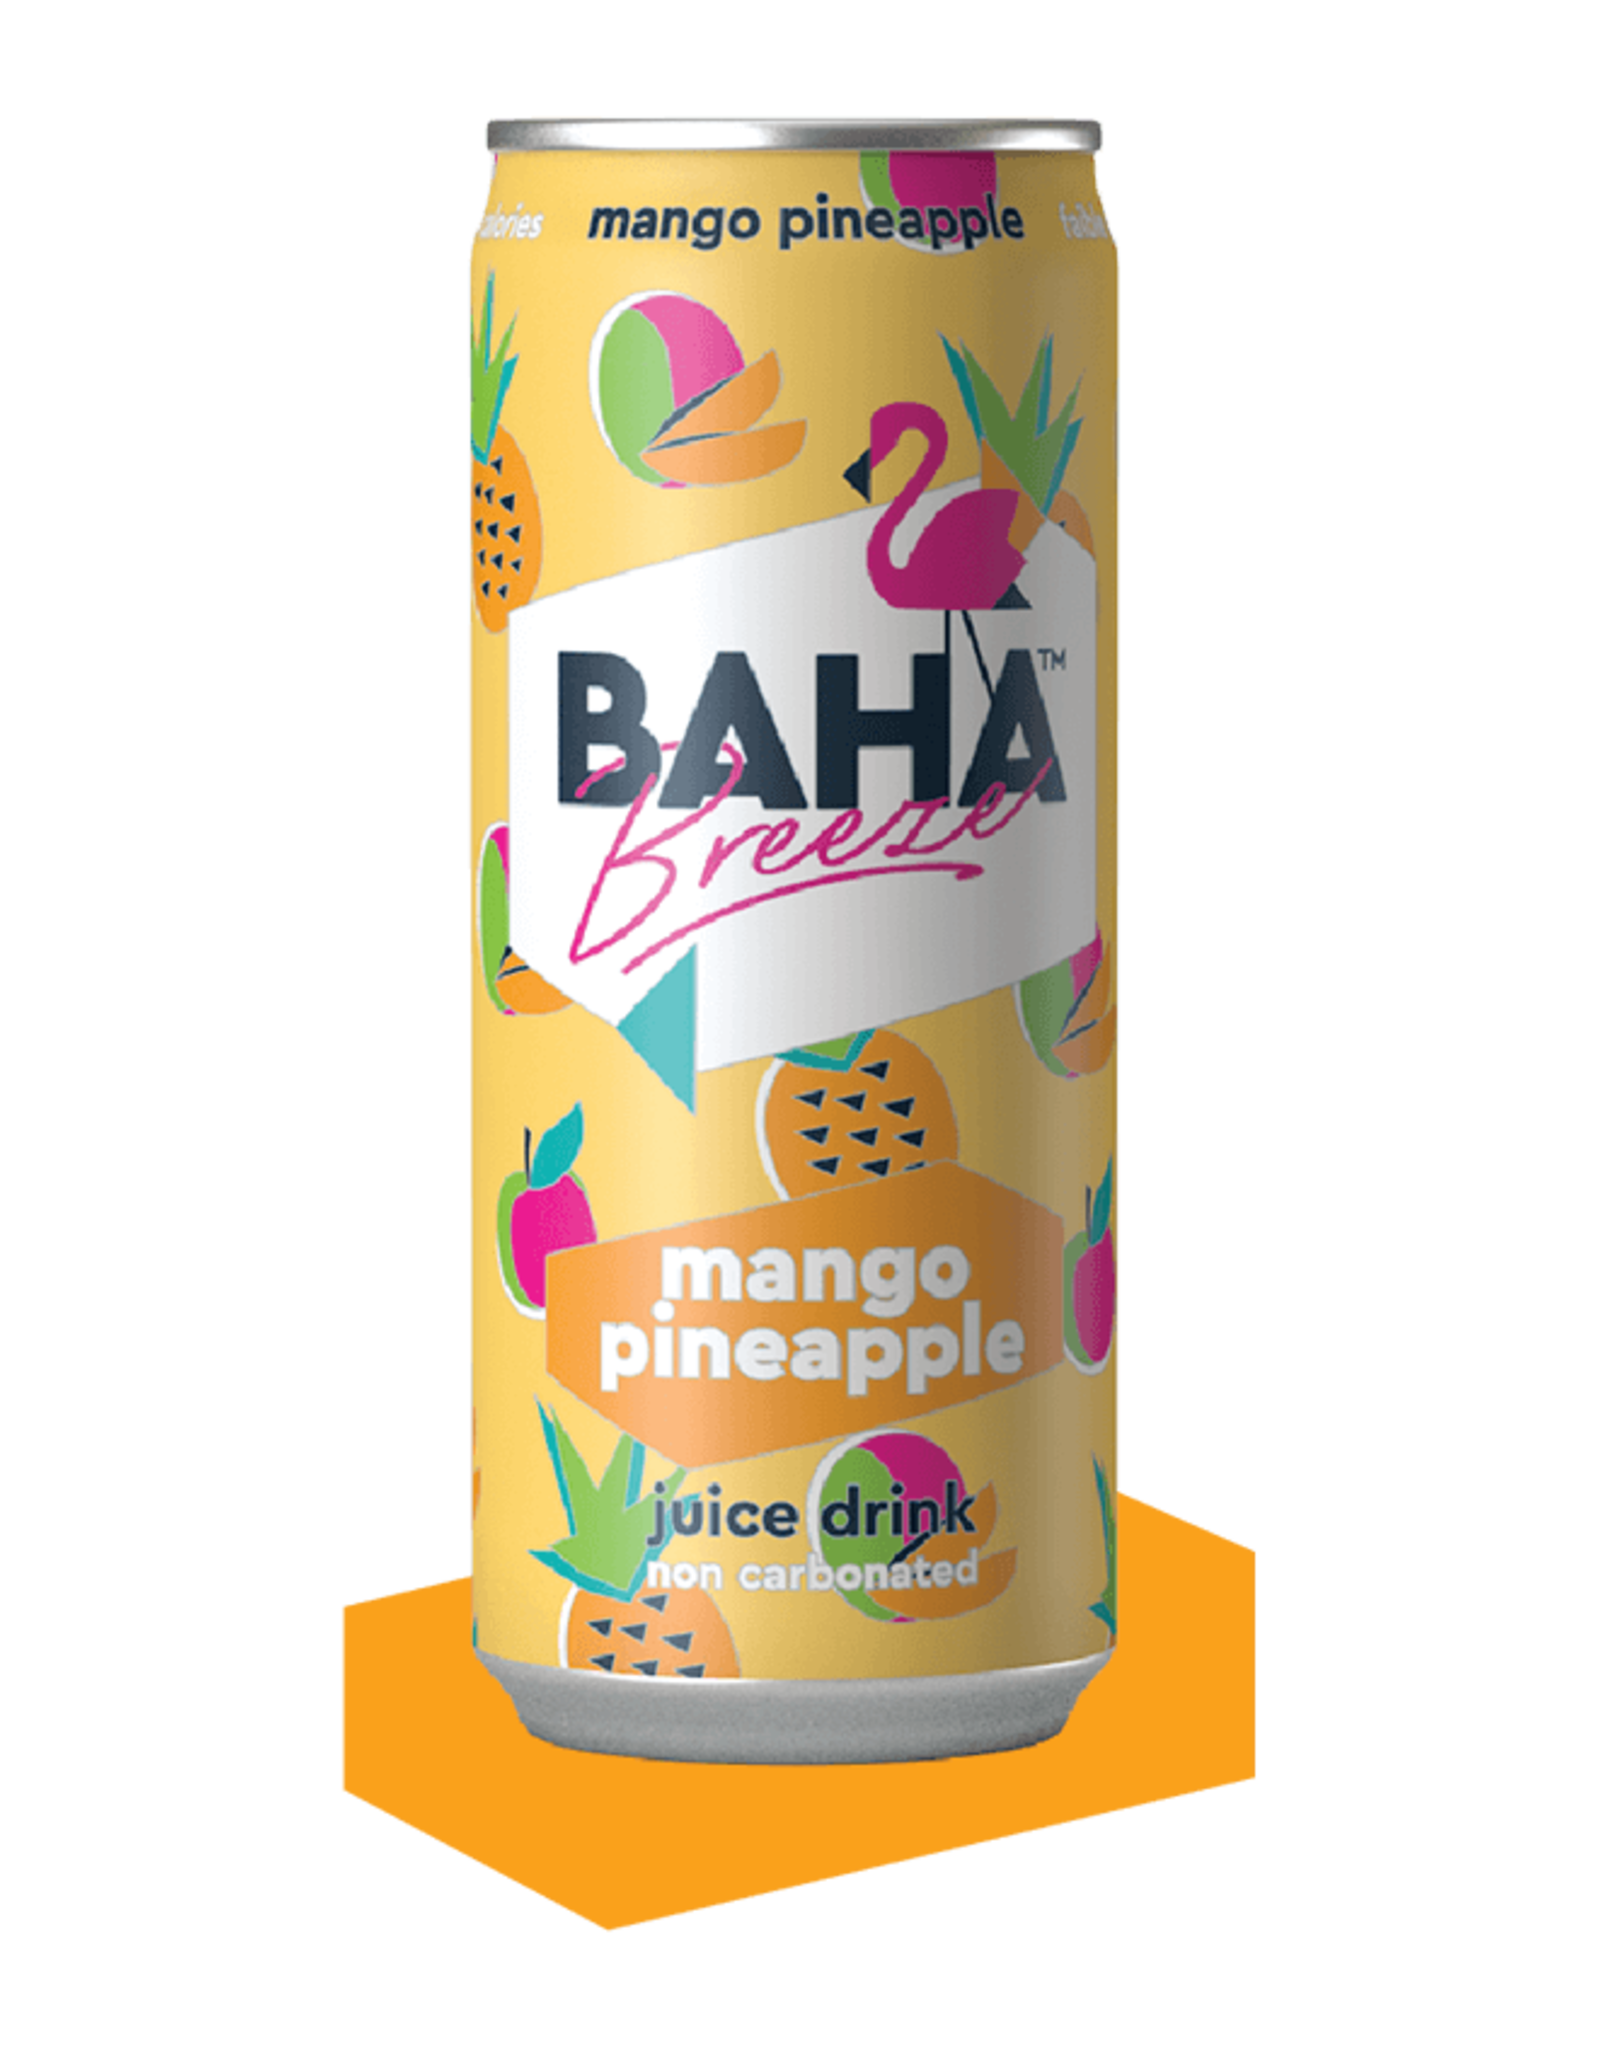 Baha Breeze Baha Breeze Mango Pineapple blikje 33cl